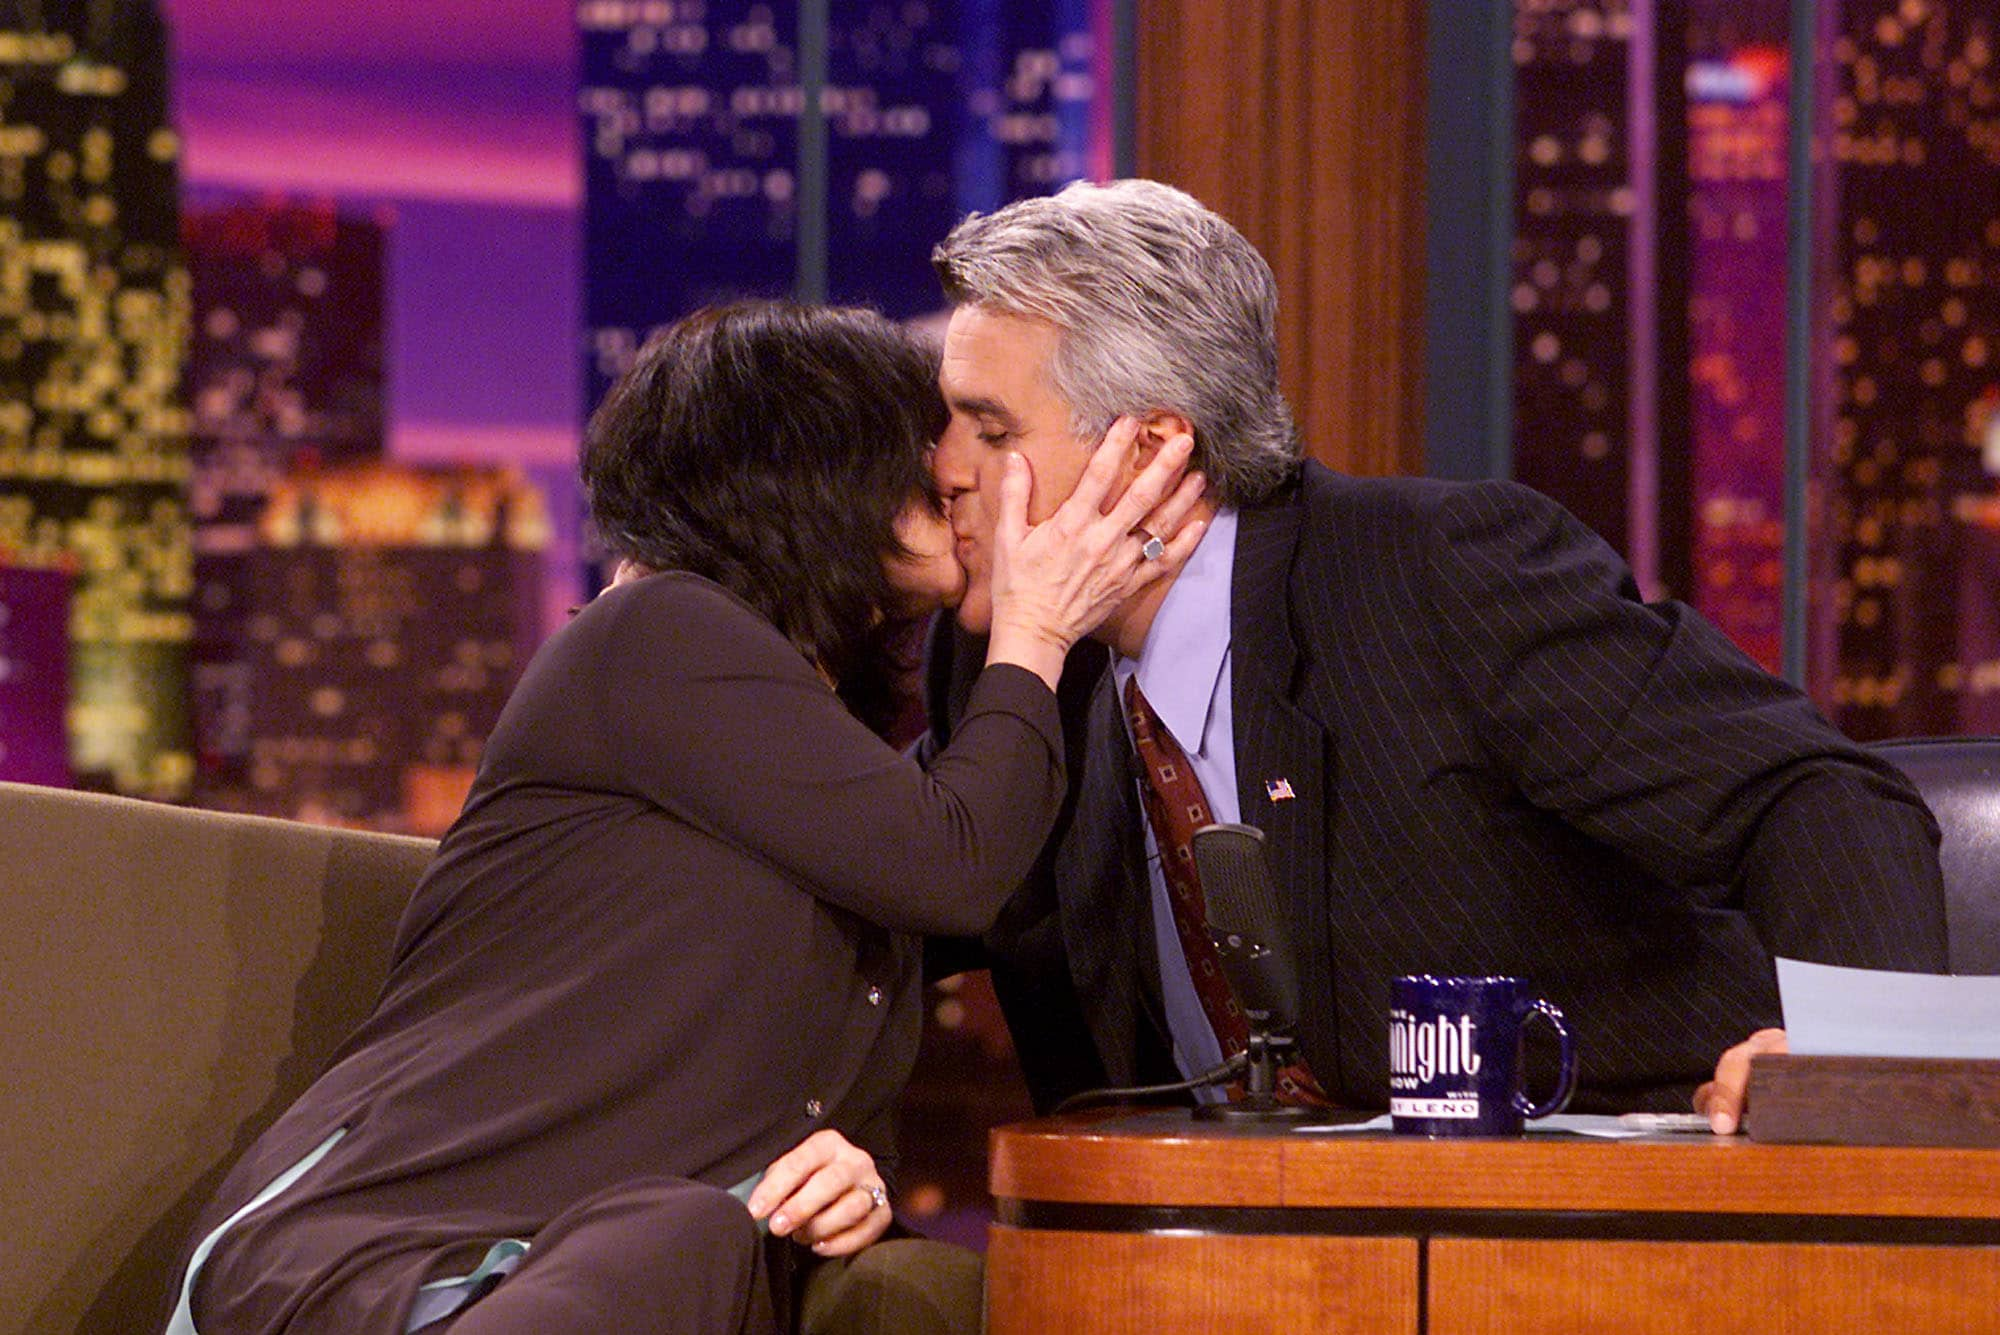 After 38 years of marriage Jay Leno says this is the key to success